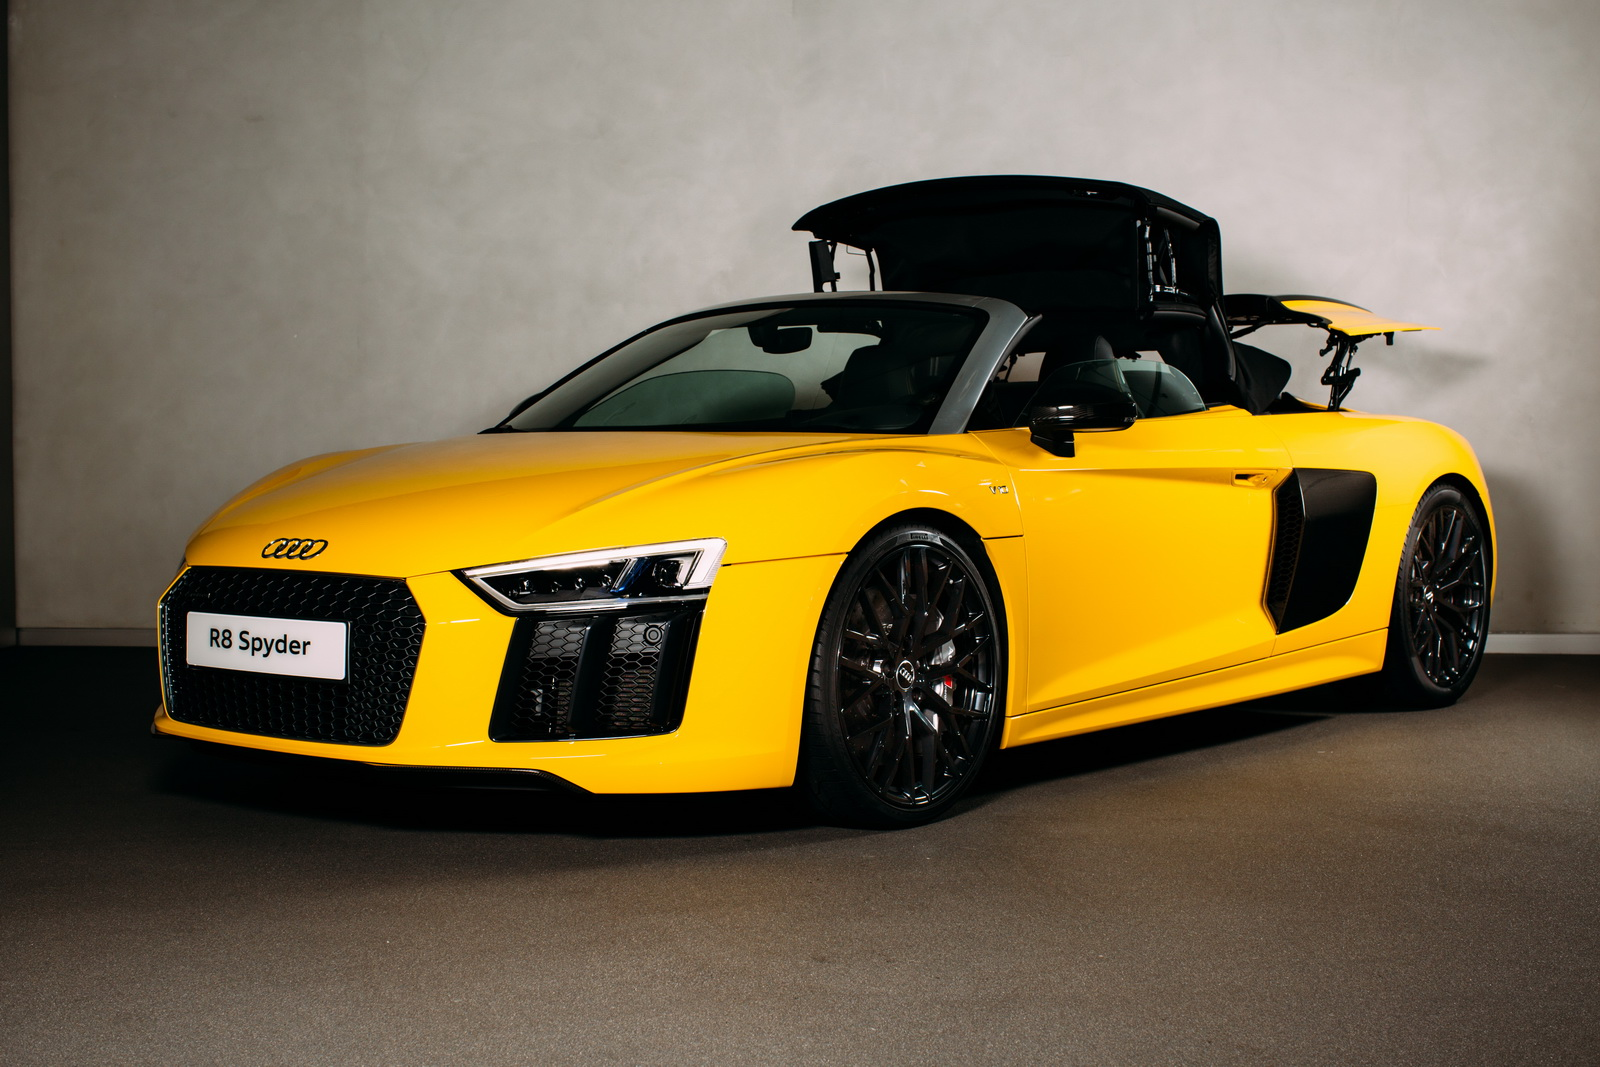 2017 audi r8 spyder launched in britain from £129,900 - autoevolution